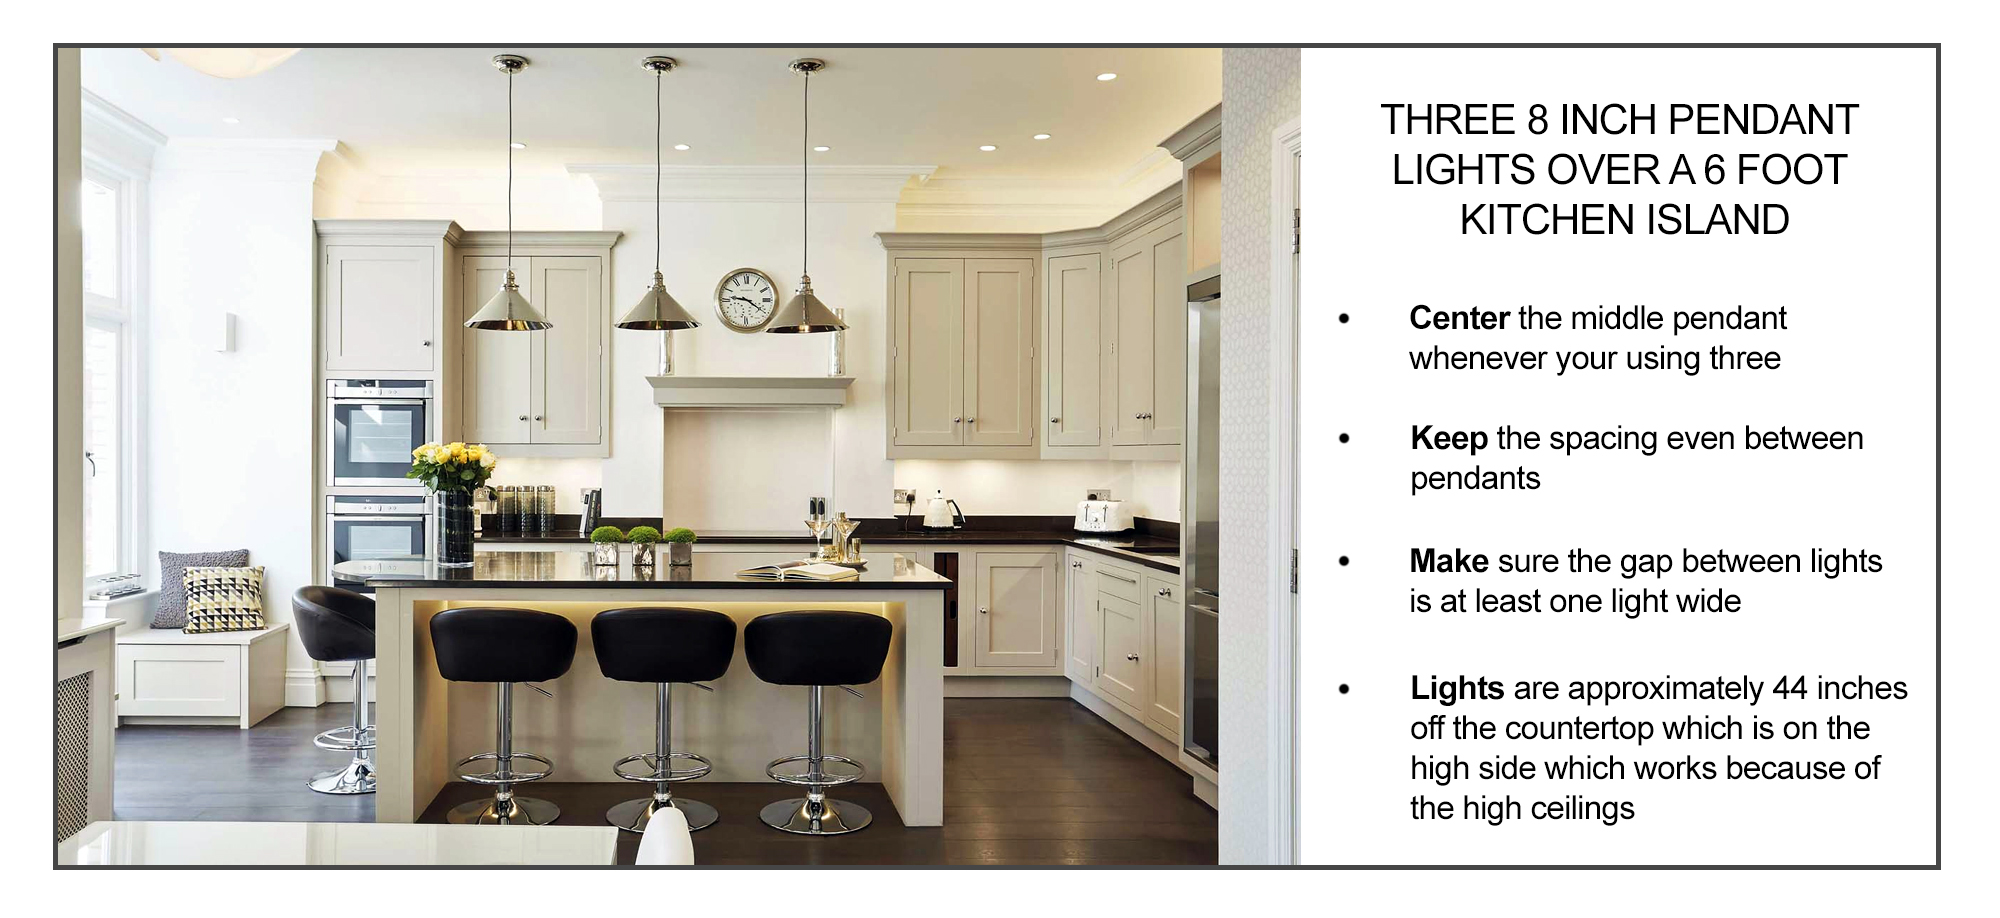 how to position three pendant lights over a kitchen island inforgraphic